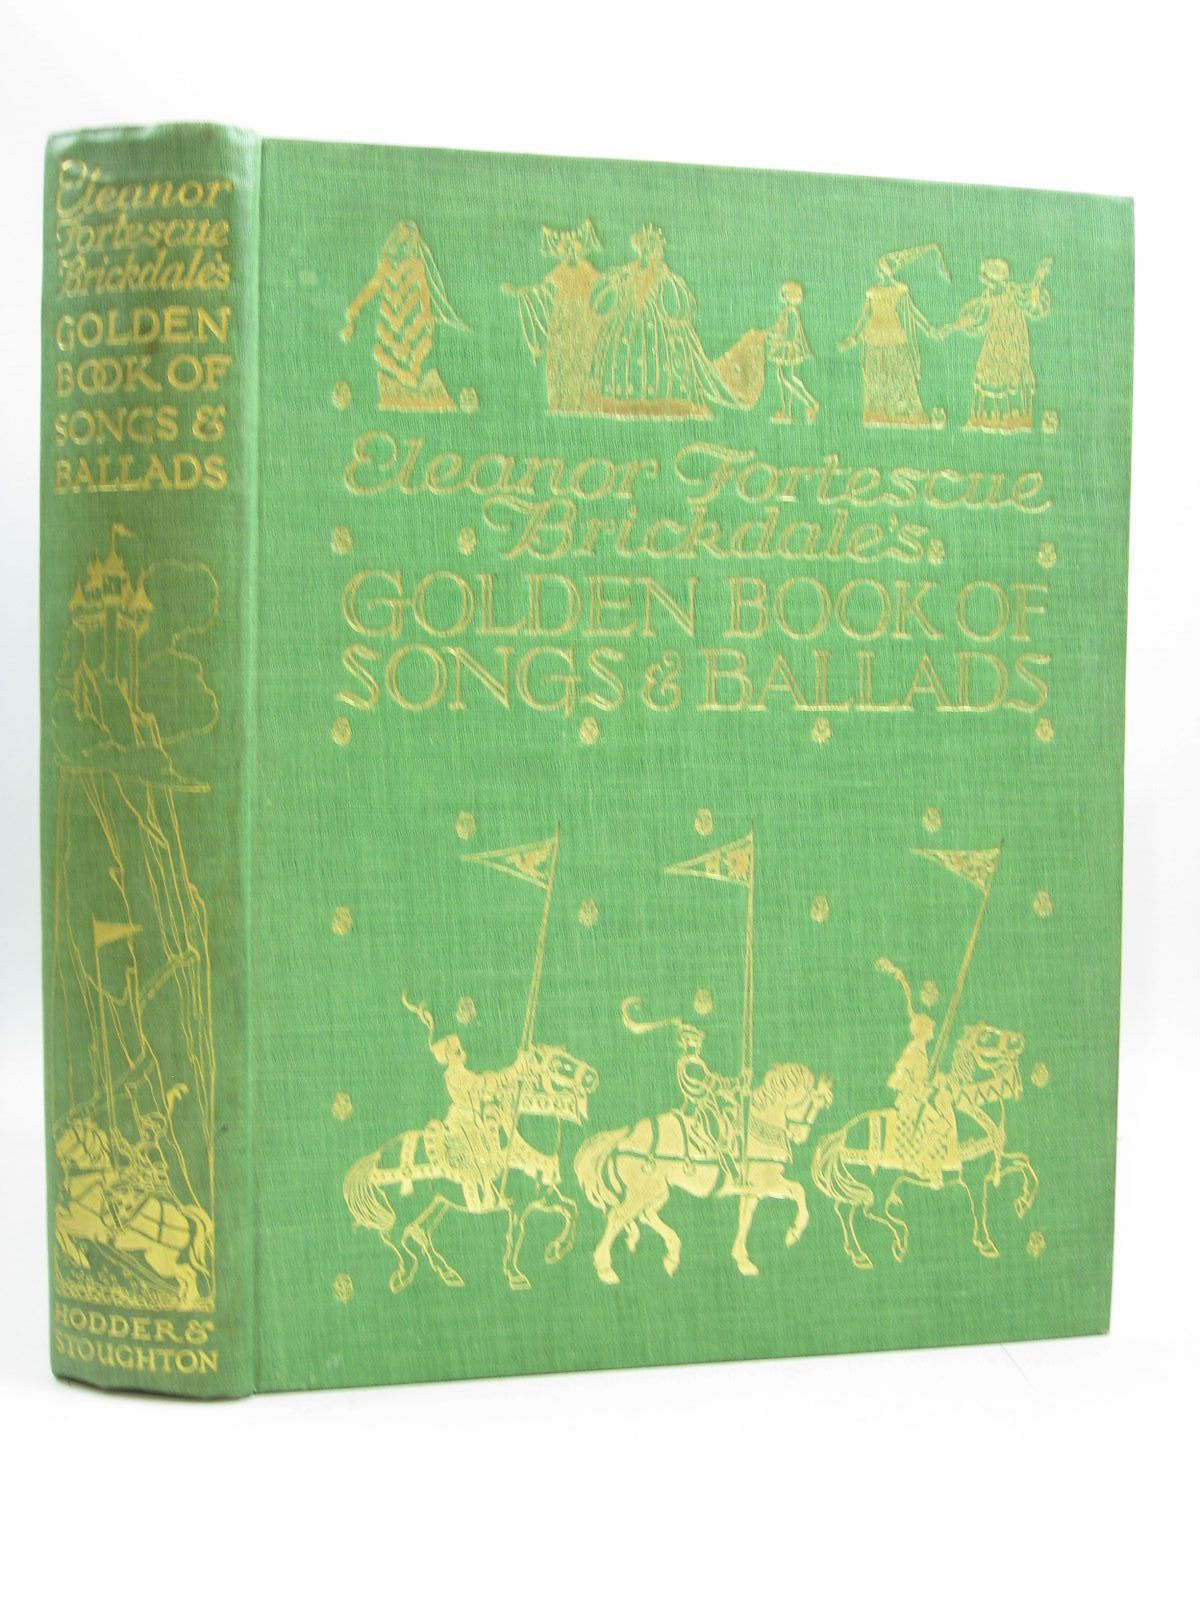 Photo of ELEANOR FORTESCUE BRICKDALE'S GOLDEN BOOK OF SONGS & BALLADS illustrated by Brickdale, Eleanor Fortescue published by Hodder & Stoughton (STOCK CODE: 1314410)  for sale by Stella & Rose's Books